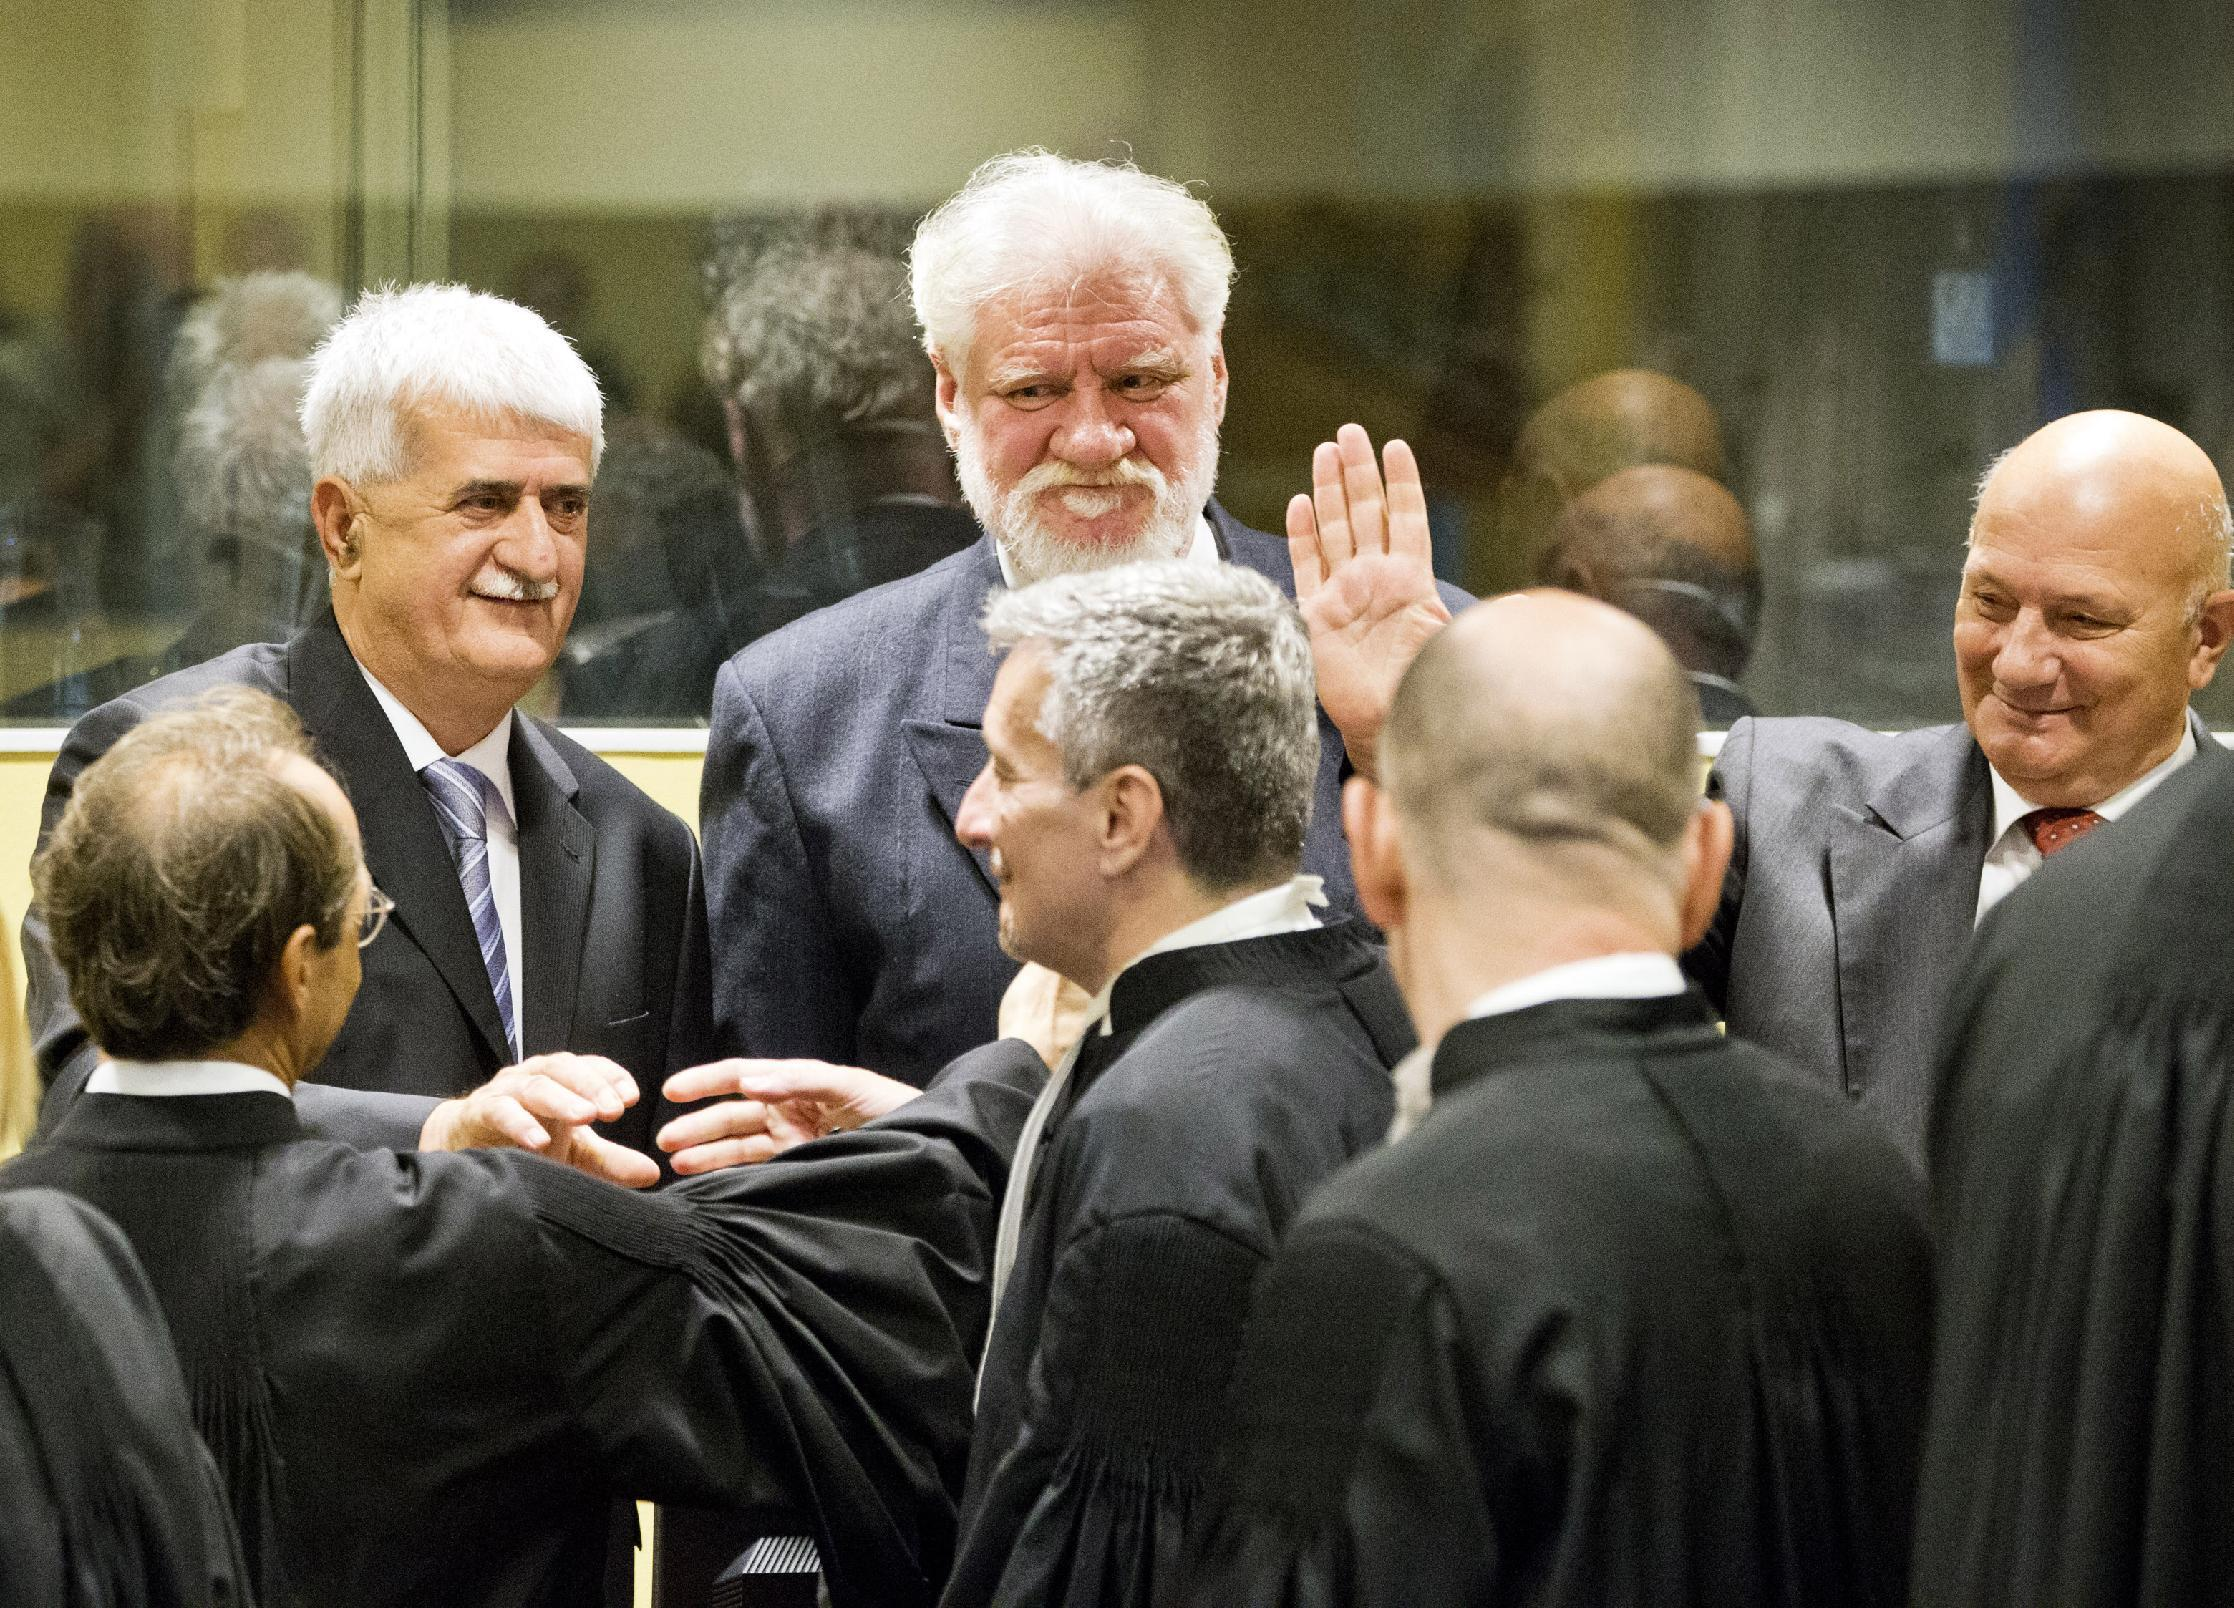 Back row from left, Bosnian Croats Bruno Stojic, Slobodan Praljak and Milivoj Petkovic, greet their lawyers prior to their judgment at the Yugoslav war crimes tribunal (ICTY) in The Hague, Netherlands, Wednesday May 29, 2013. The ICTY is set to deliver verdicts in the long-running trial of six senior Bosnian Croats on charges of crimes against Muslims and Serbs as they tried to carve out a Croat state in Bosnia during the country's 1992-95 war. Prosecutors have asked for sentences of up to 40 years for the suspects. (AP Photo/Jiri Buller, Pool)